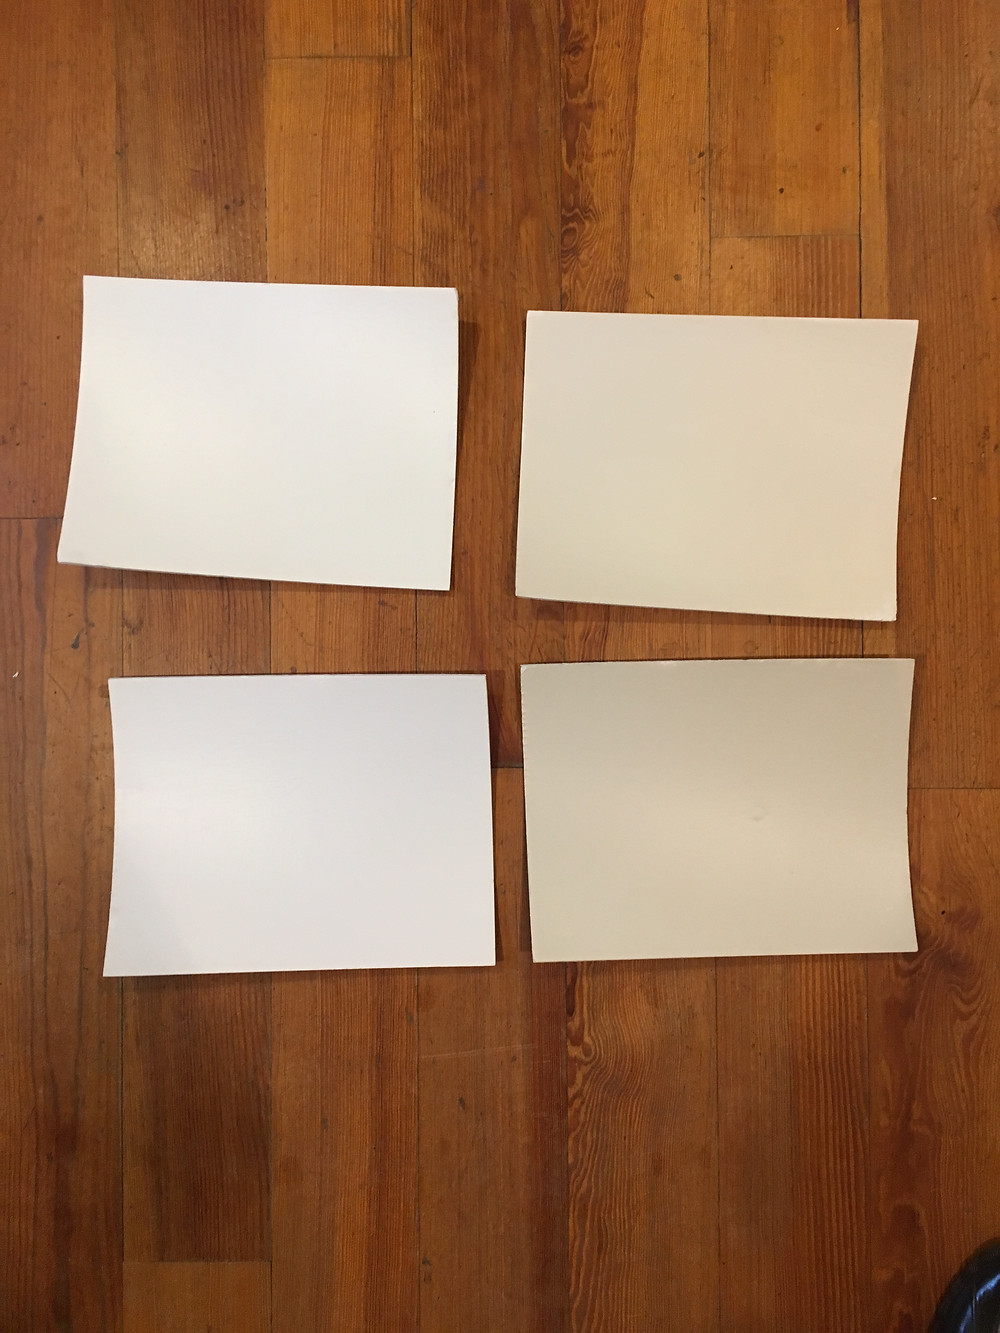 color swatches for cabinet and wall colors